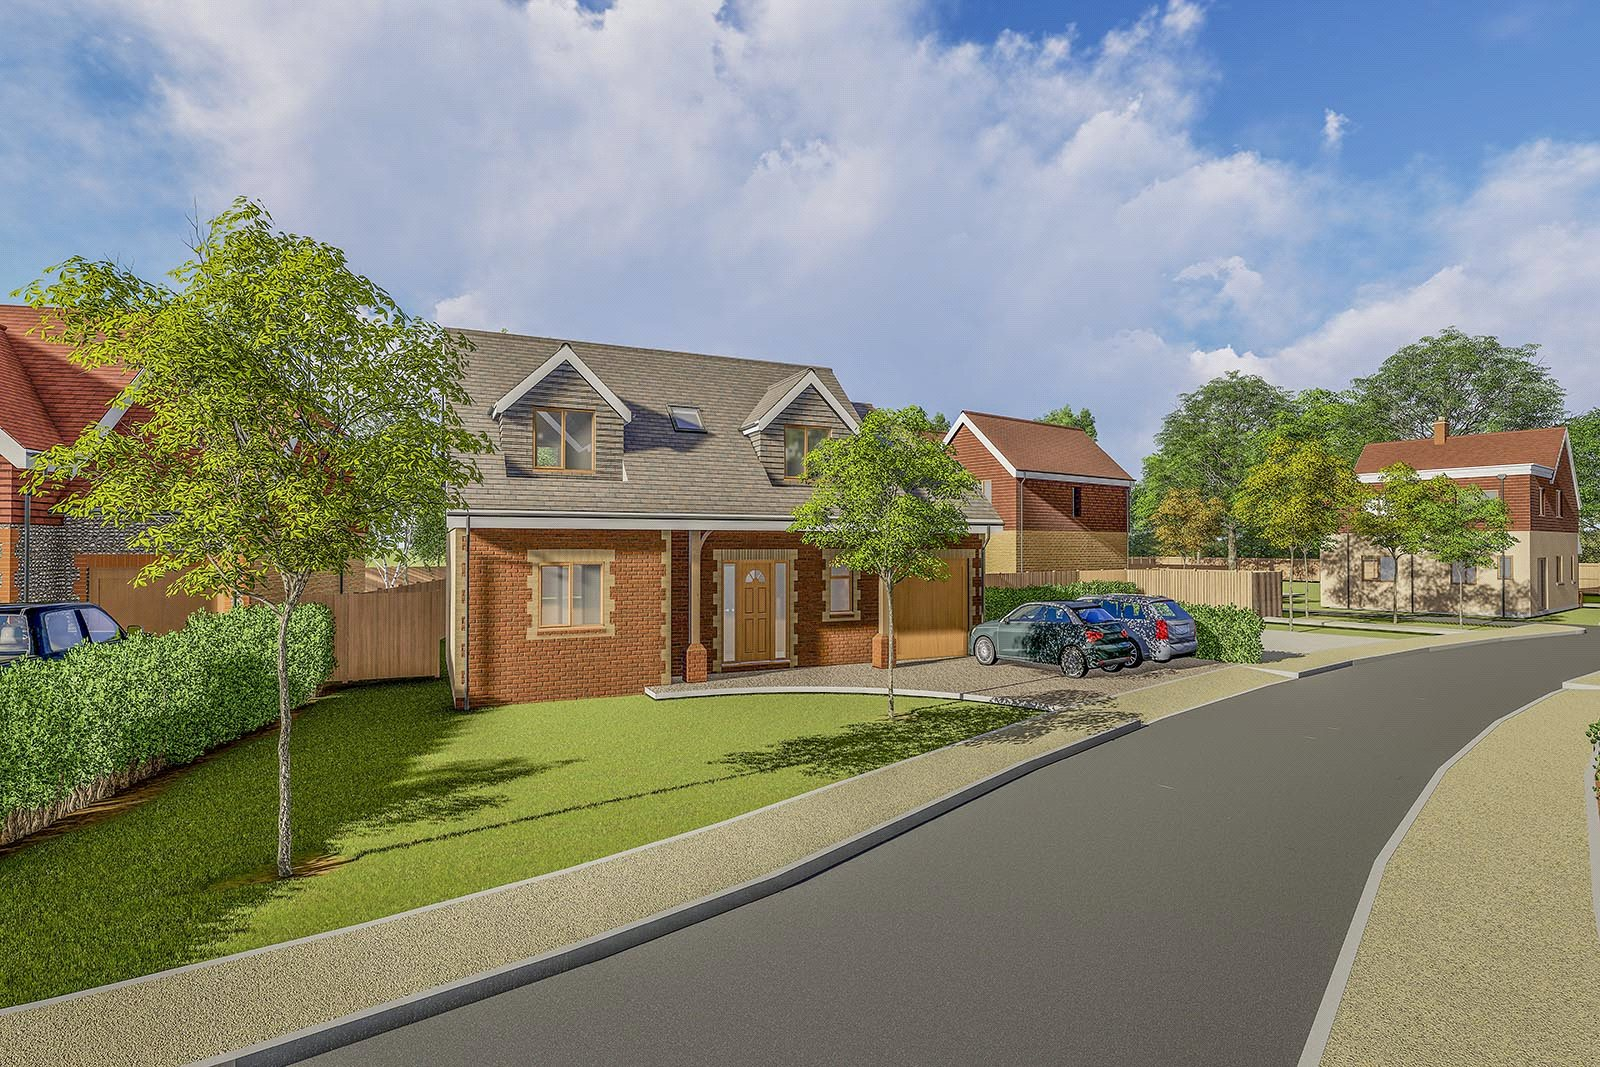 3 bed house for sale in Angmering, BN16 4EN  - Property Image 3